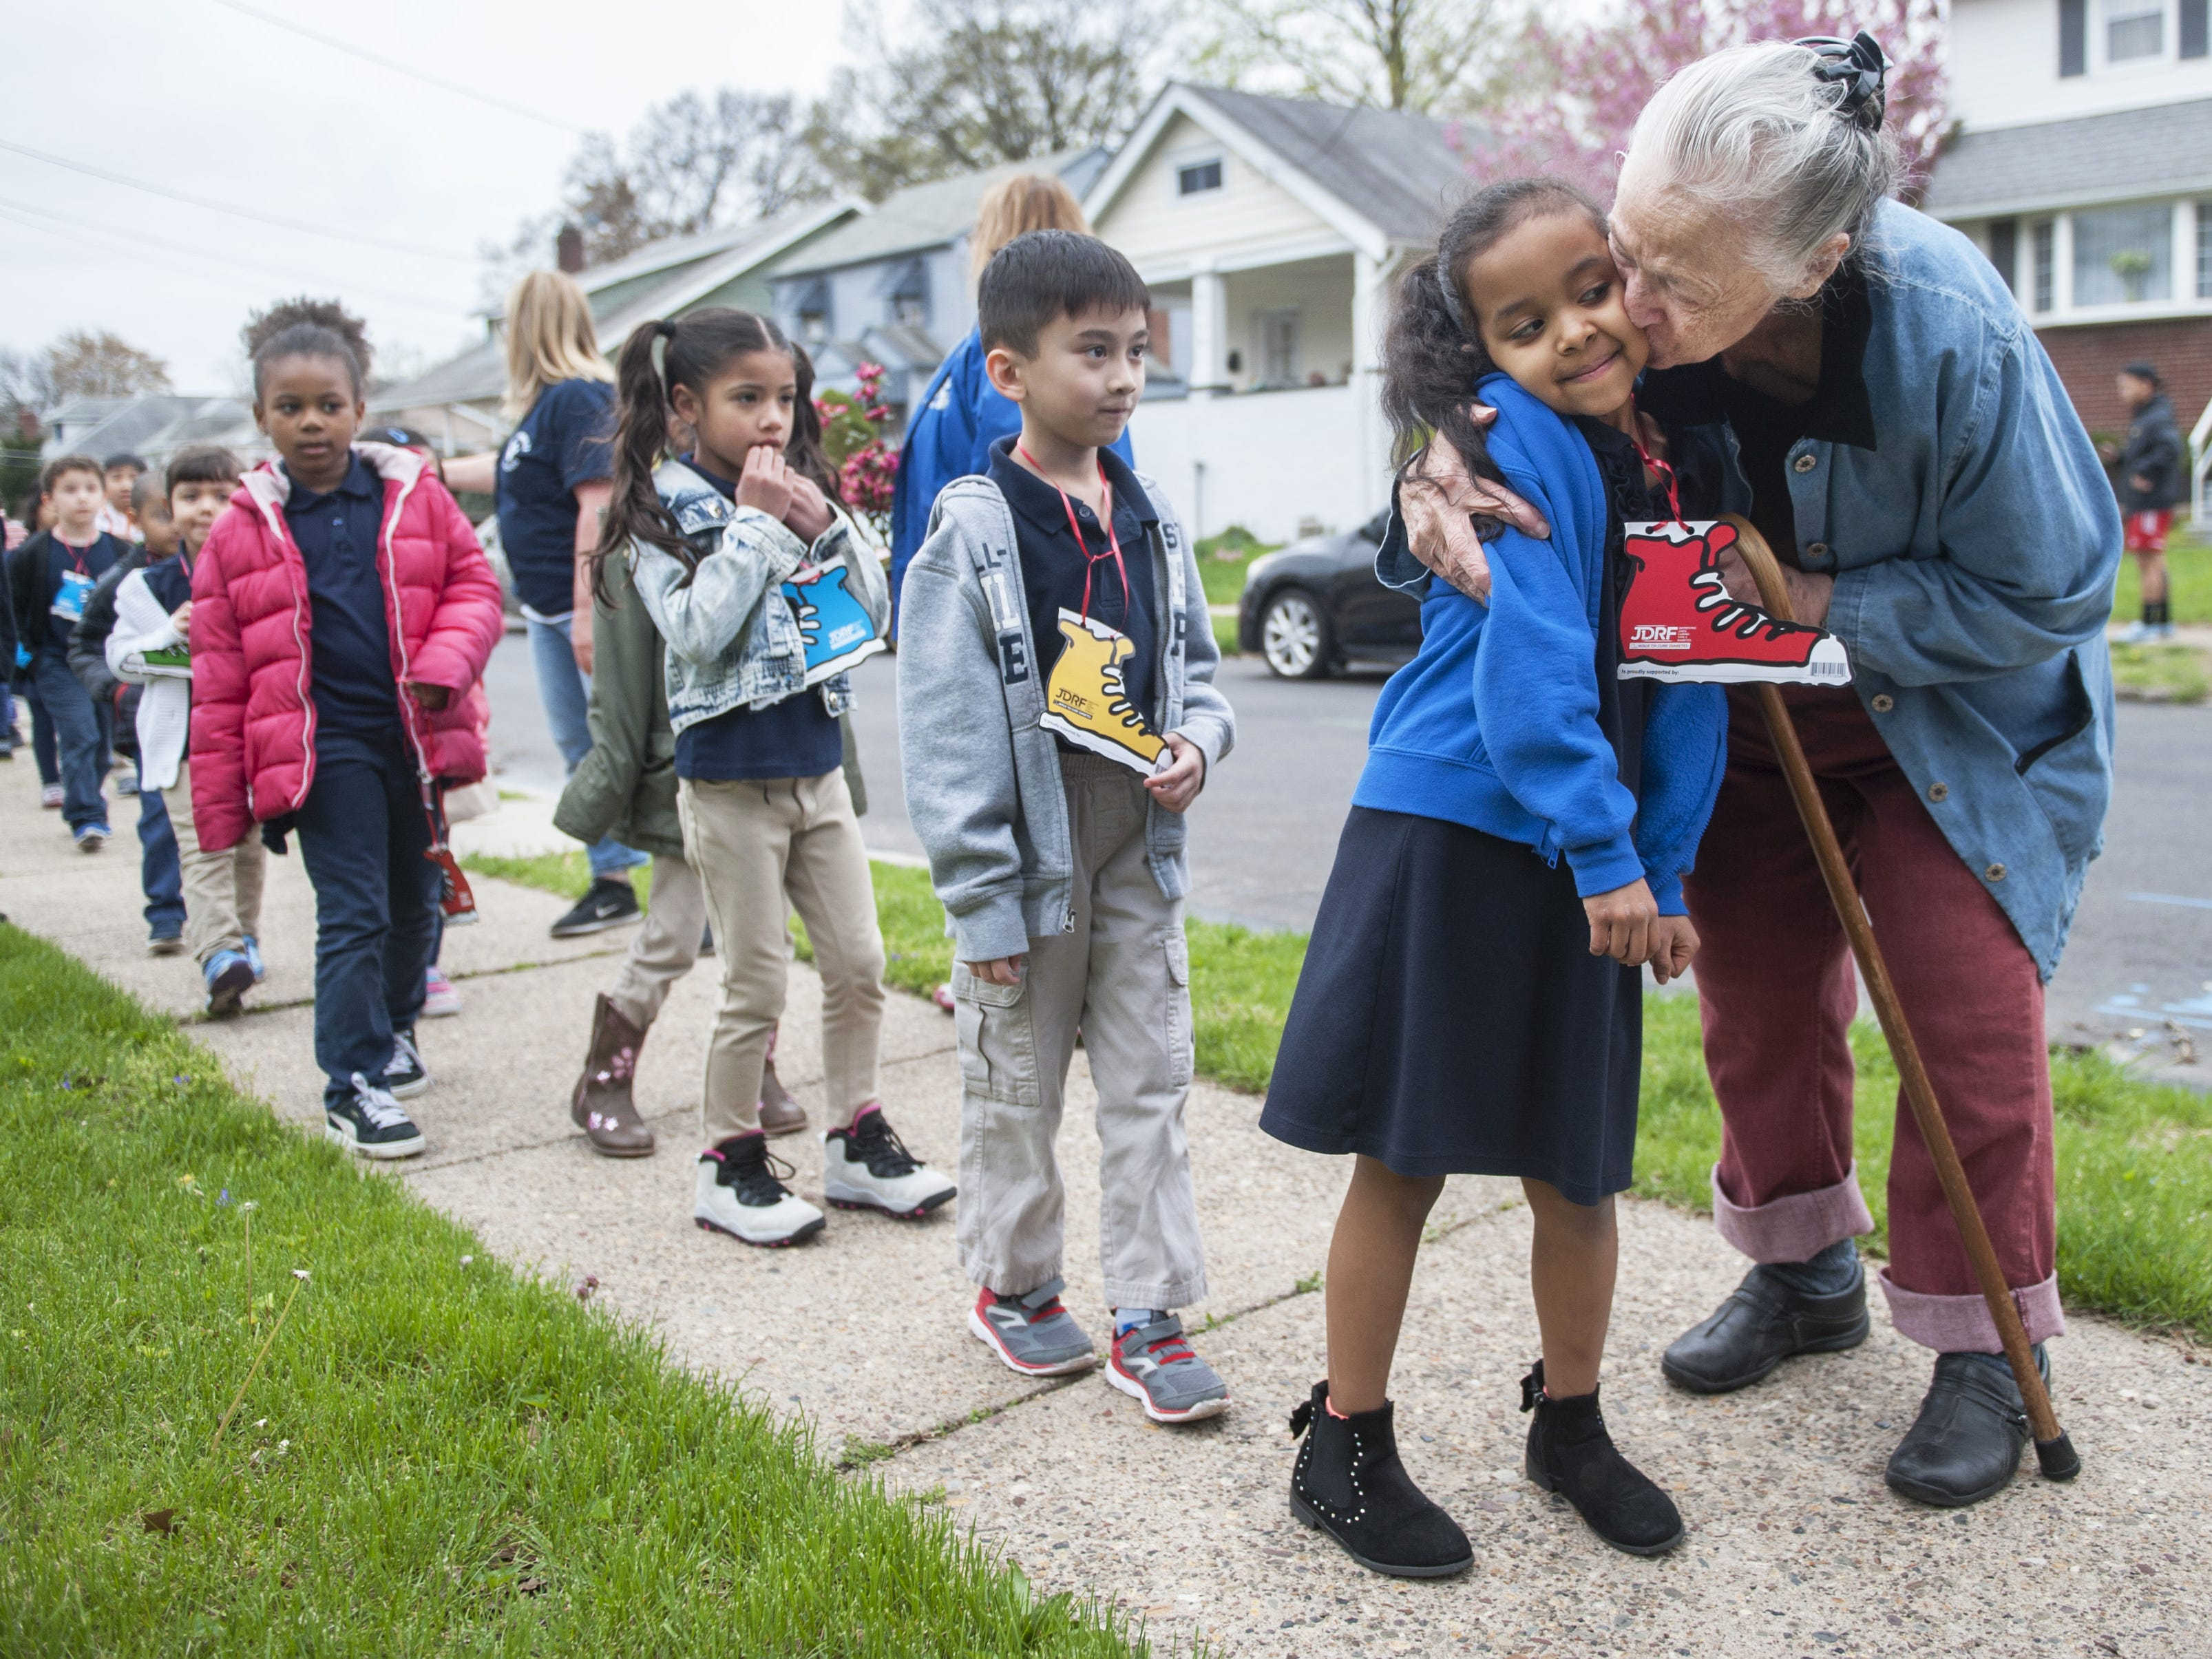 Retired school crossing guard Laura Mason, right, hugs and kisses students of Roosevelt Elementary School in Pennsauken as the students made a surprise visit to Mason's Pennsauken home, during the school's Walk To Cure Diabetes on April 27, 2018, to thank Mason for her 50 years of service as a crossing guard.